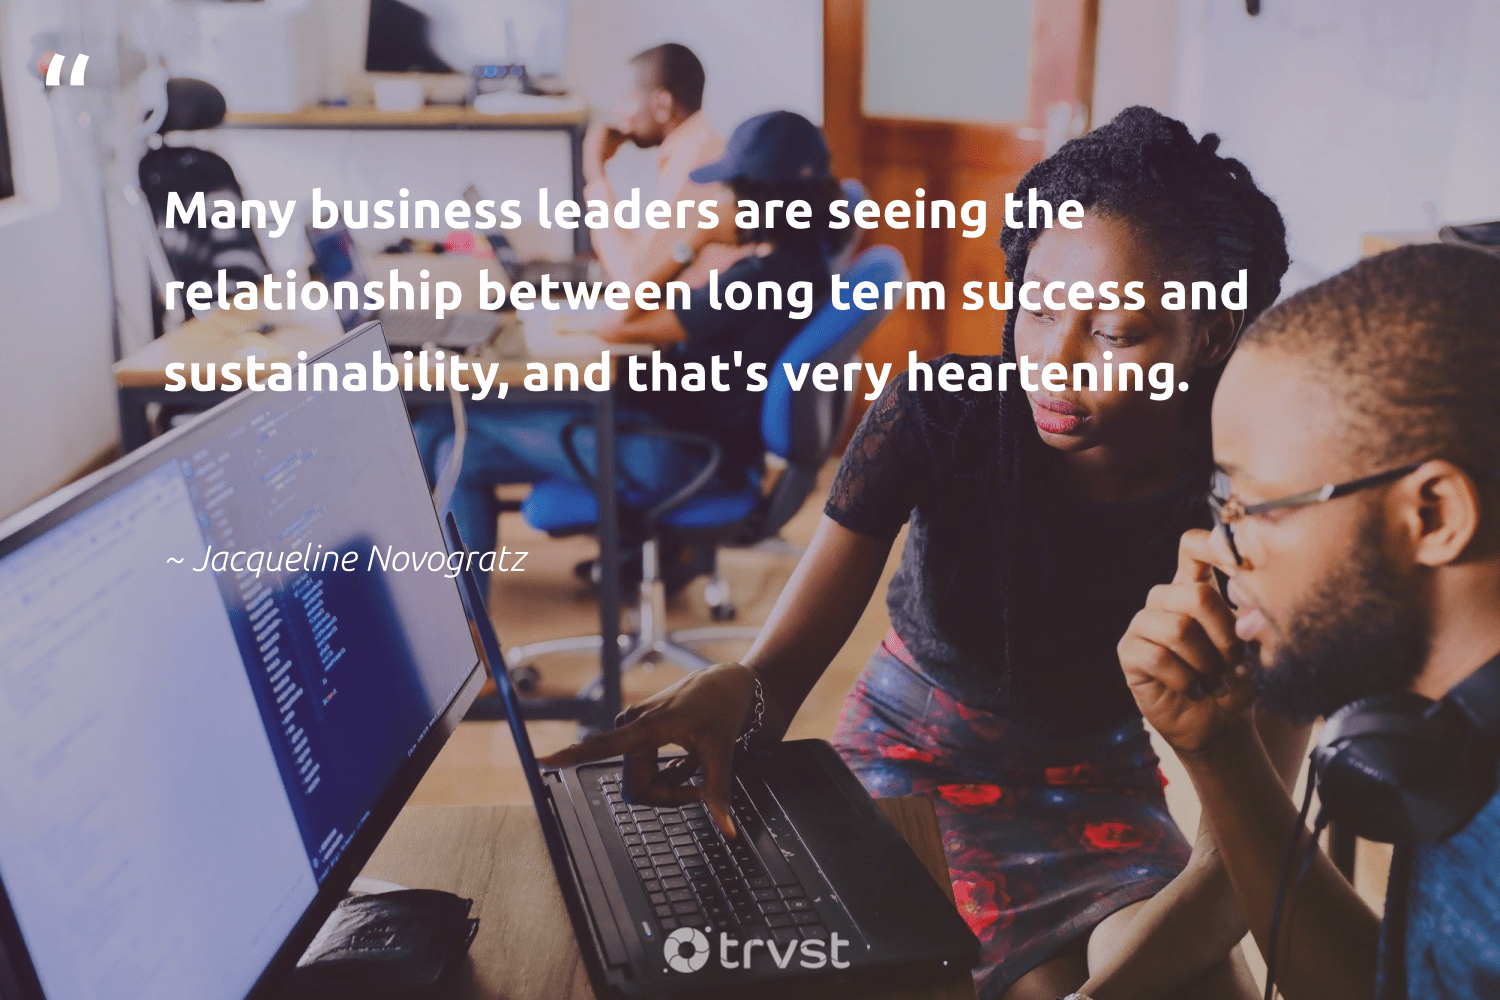 """""""Many business leaders are seeing the relationship between long term success and sustainability, and that's very heartening.""""  - Jacqueline Novogratz #trvst #quotes #sustainability #success #mostwontiwill #ecoconscious #nevergiveup #beinspired #productive #dogood #futureofwork #socialimpact"""